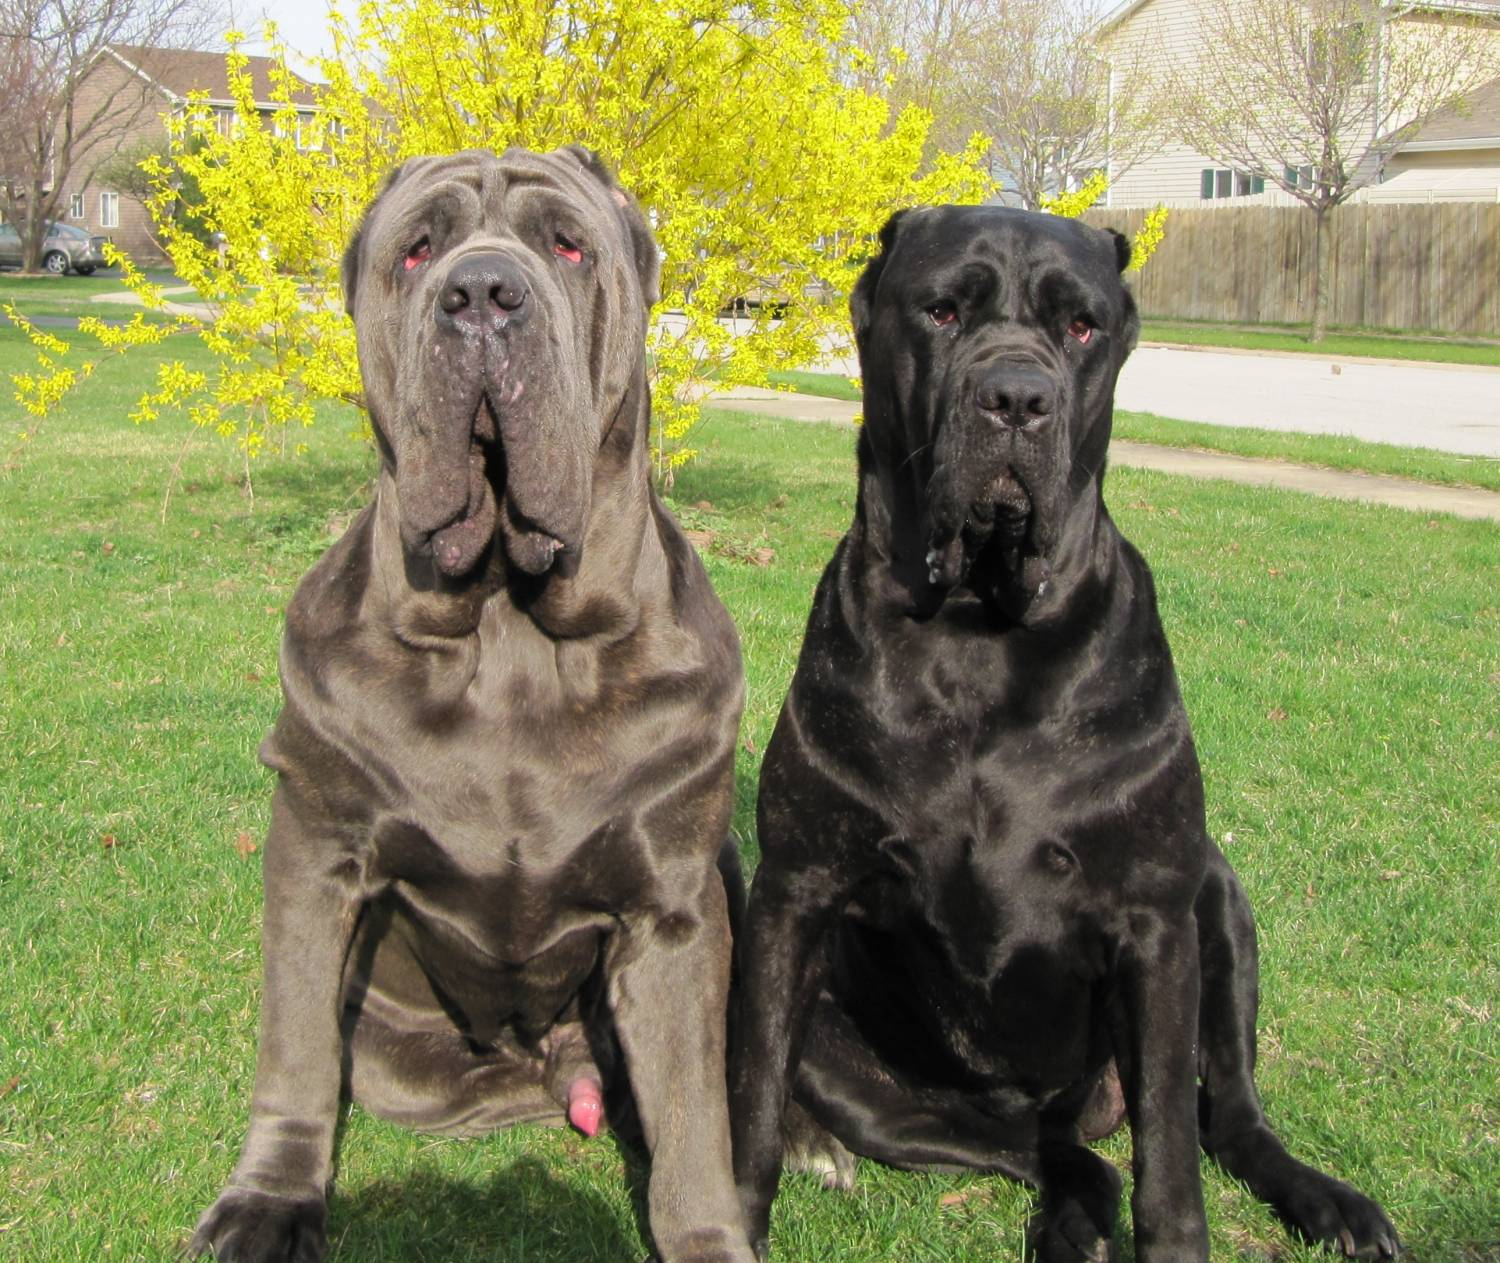 Two Neapolitan Mastiff dogs wallpaper